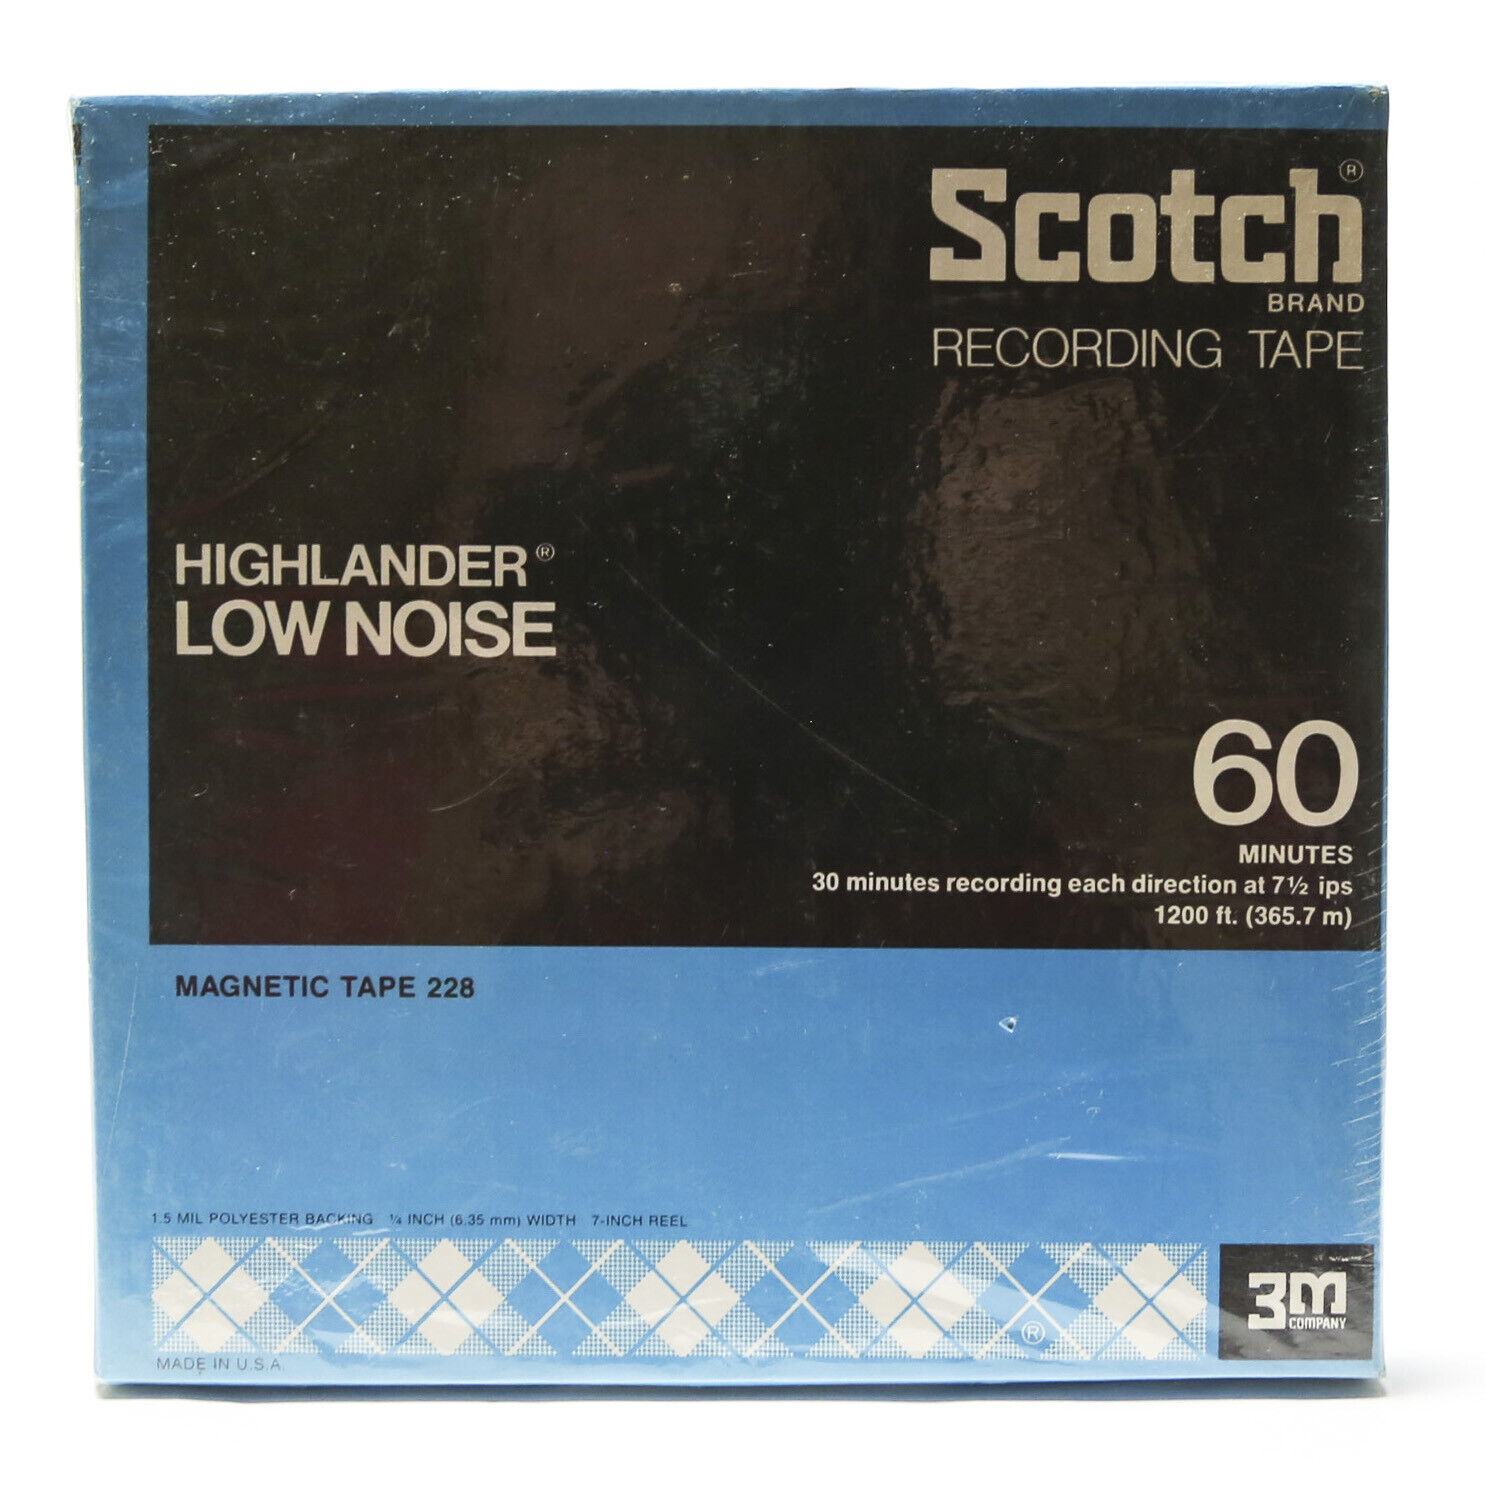 Vtg New Scotch Brand Recording Tape Highlander Low Noise 60 Minutes Reel To Reel - $17.99